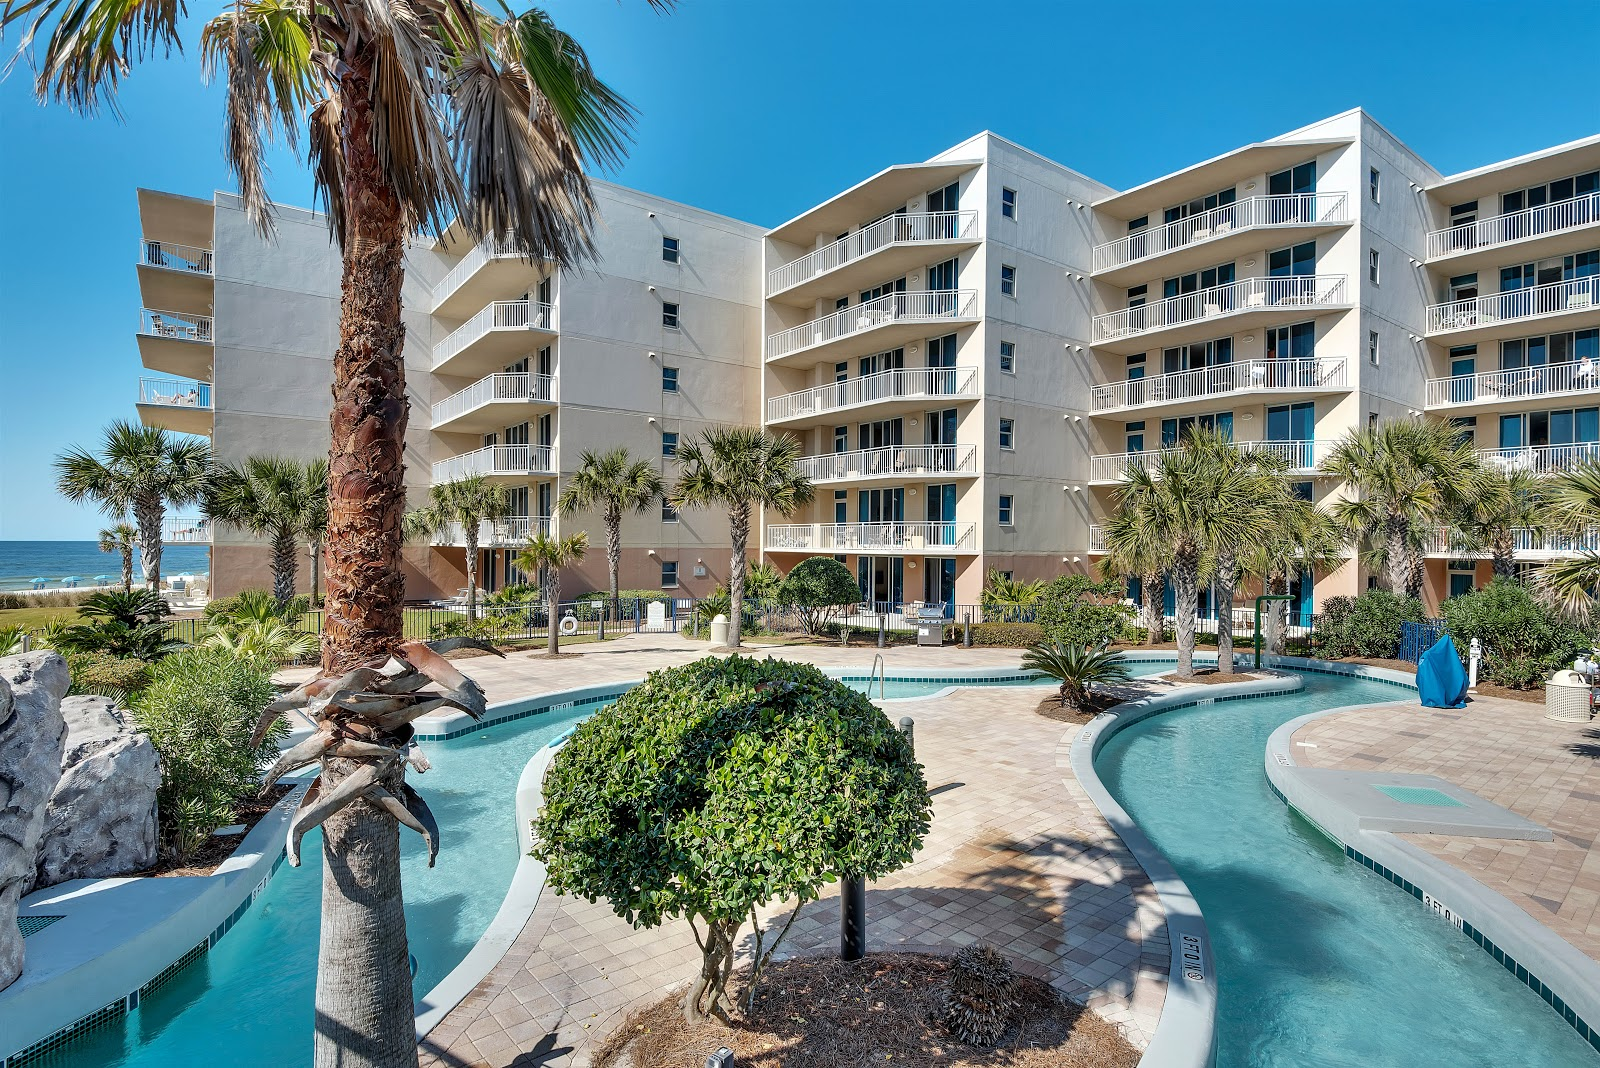 Birmingham, ResortQuest, Wyndham Vacation Rentals, beach, vacation, Fort Walton Beach, Florida, Destin